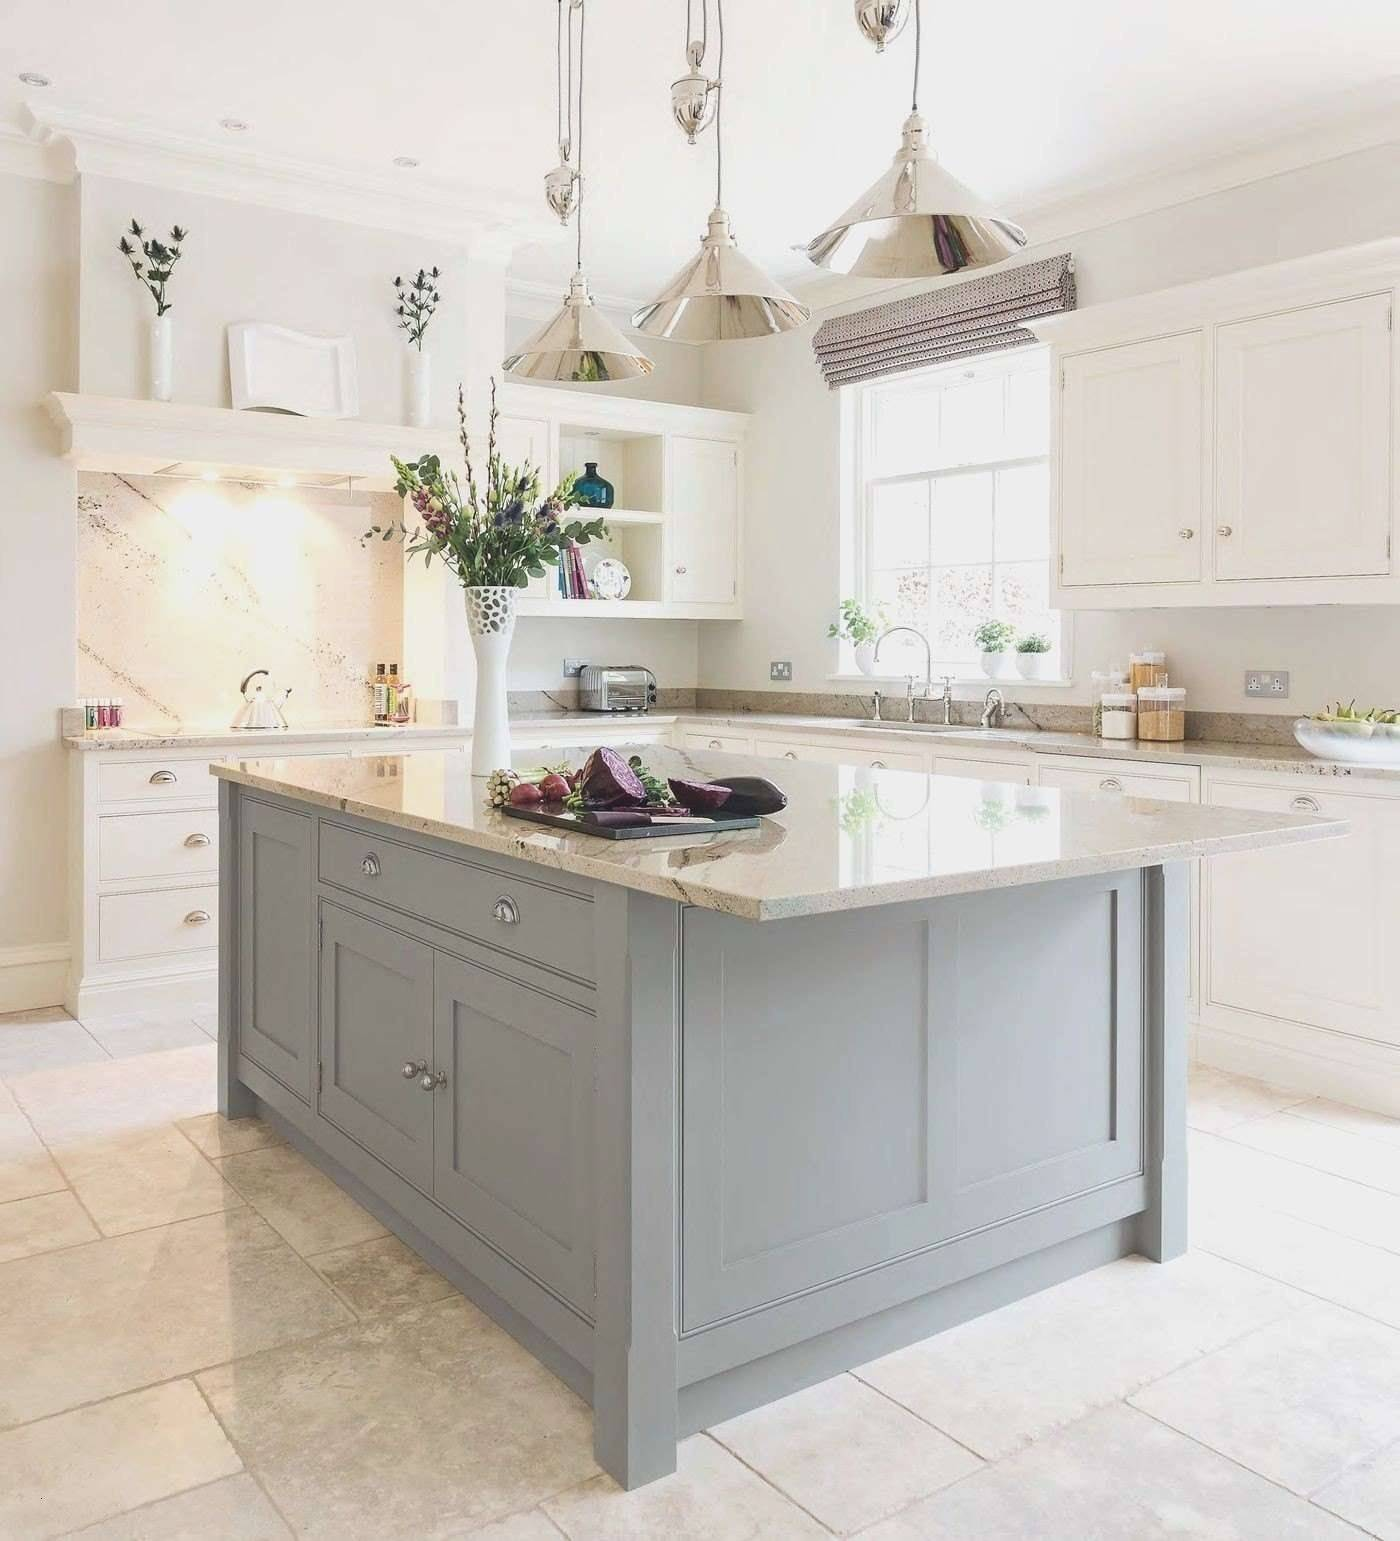 light grey kitchen paint fresh soft gray paint light gray kitchen cabinets incredible light grey of light grey kitchen paint